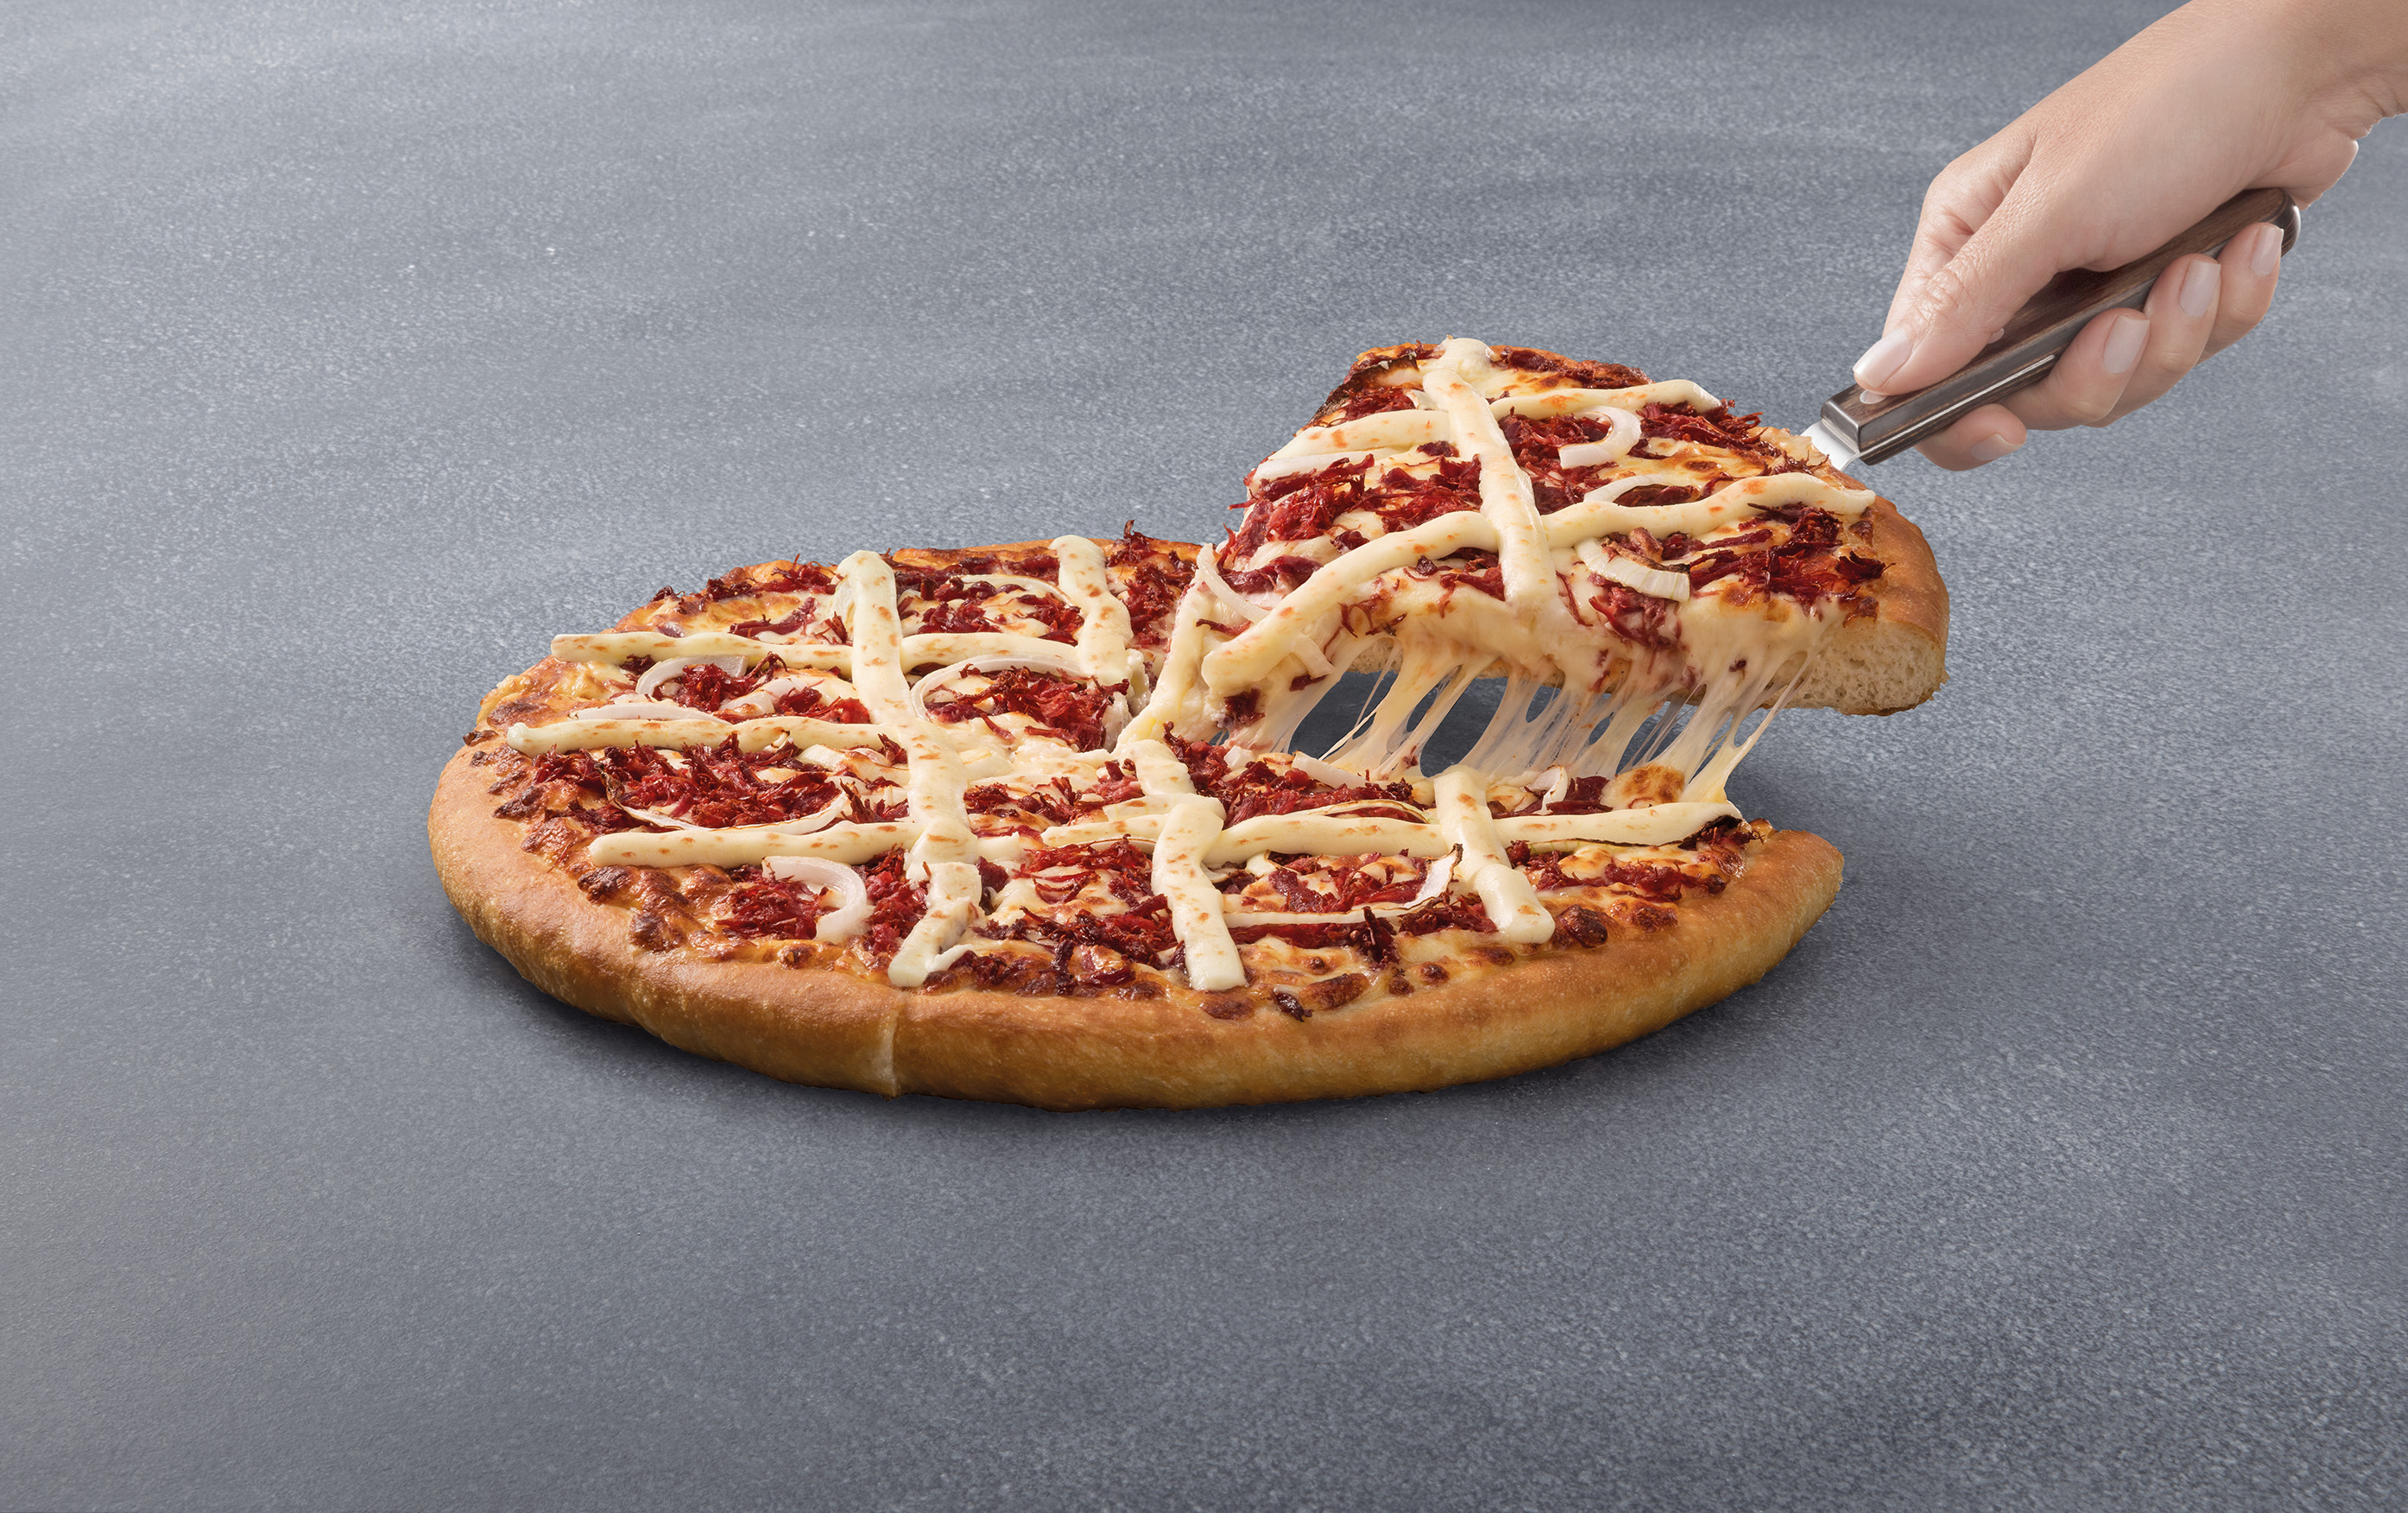 Pizza hut lan a pizza sabor carne seca com requeij o no for Oficinas de pizza hut